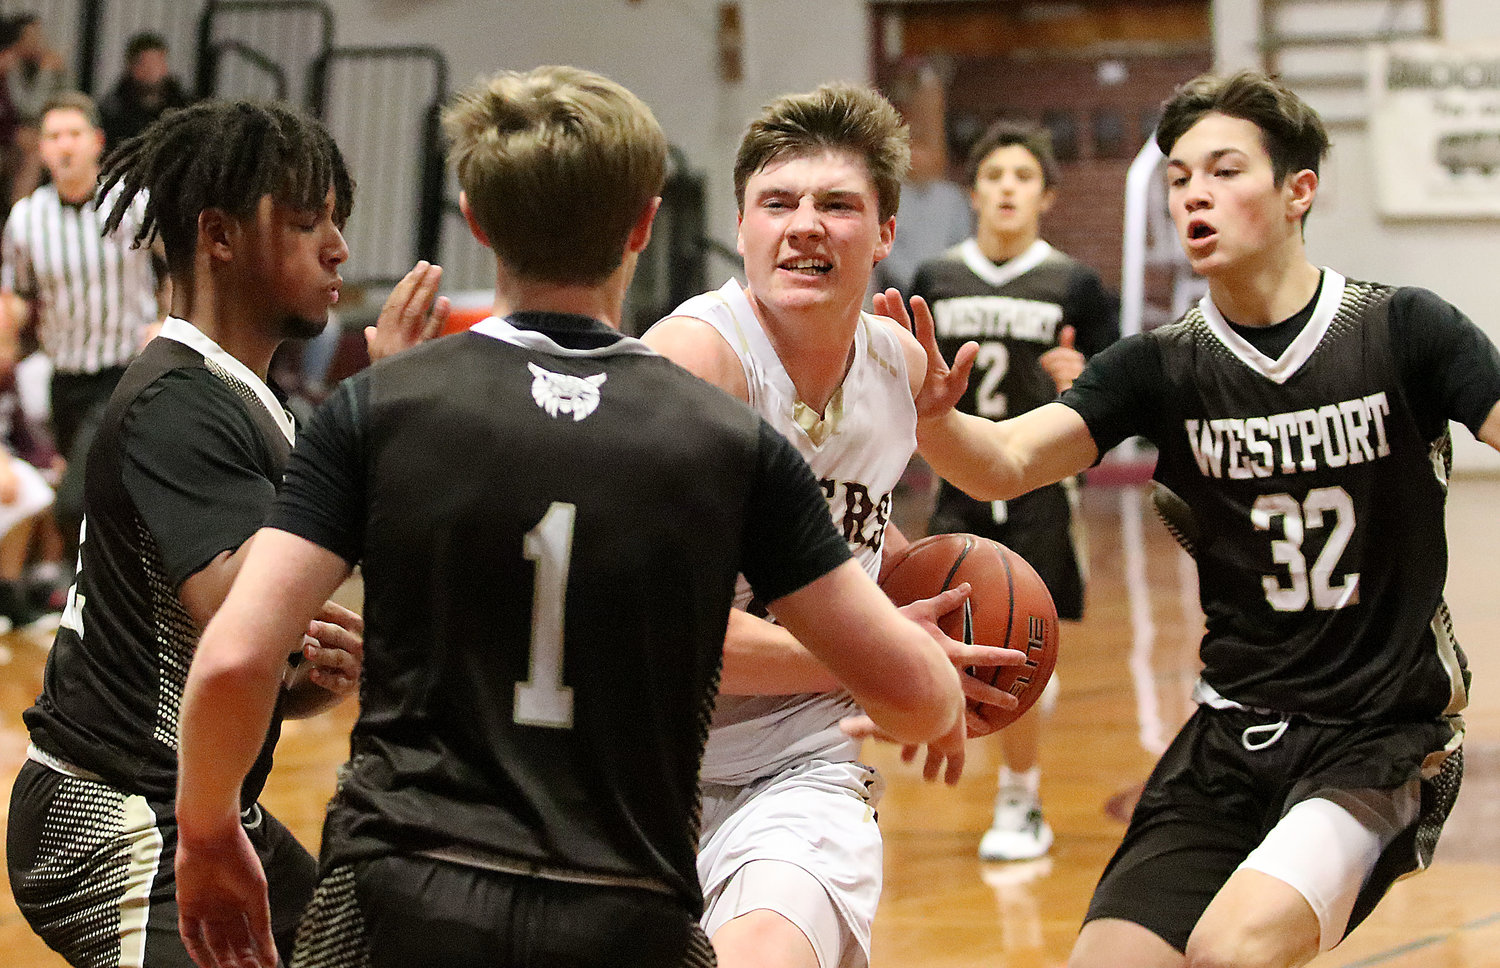 Tigers forward Matt Gacioch readies to drive through a host of Westport players to the basket in the first half.